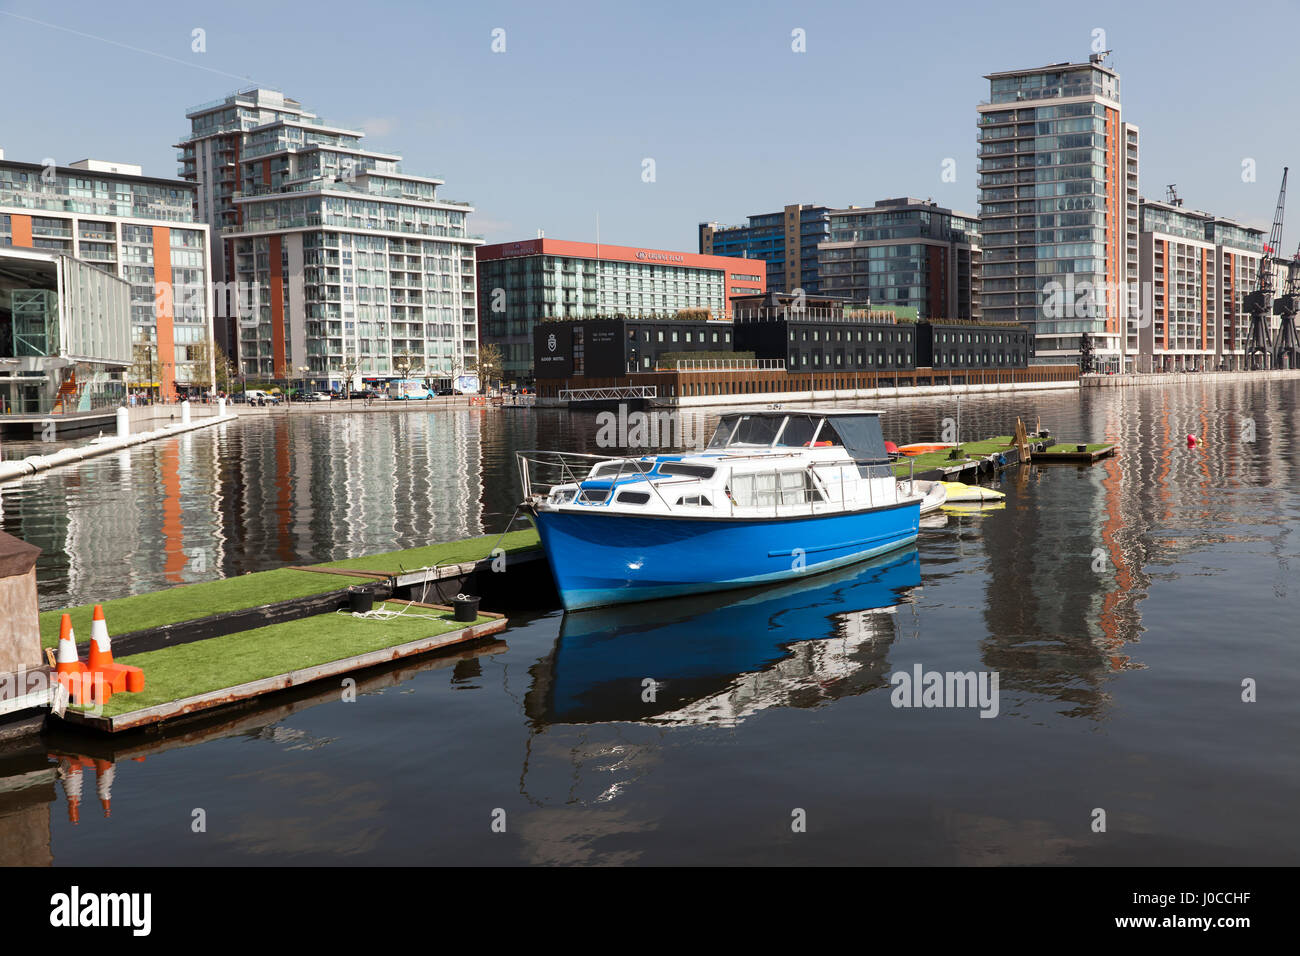 The Western Gateway Of The Royal Victoria Dock Newham London Stock Photo Royalty Free Image